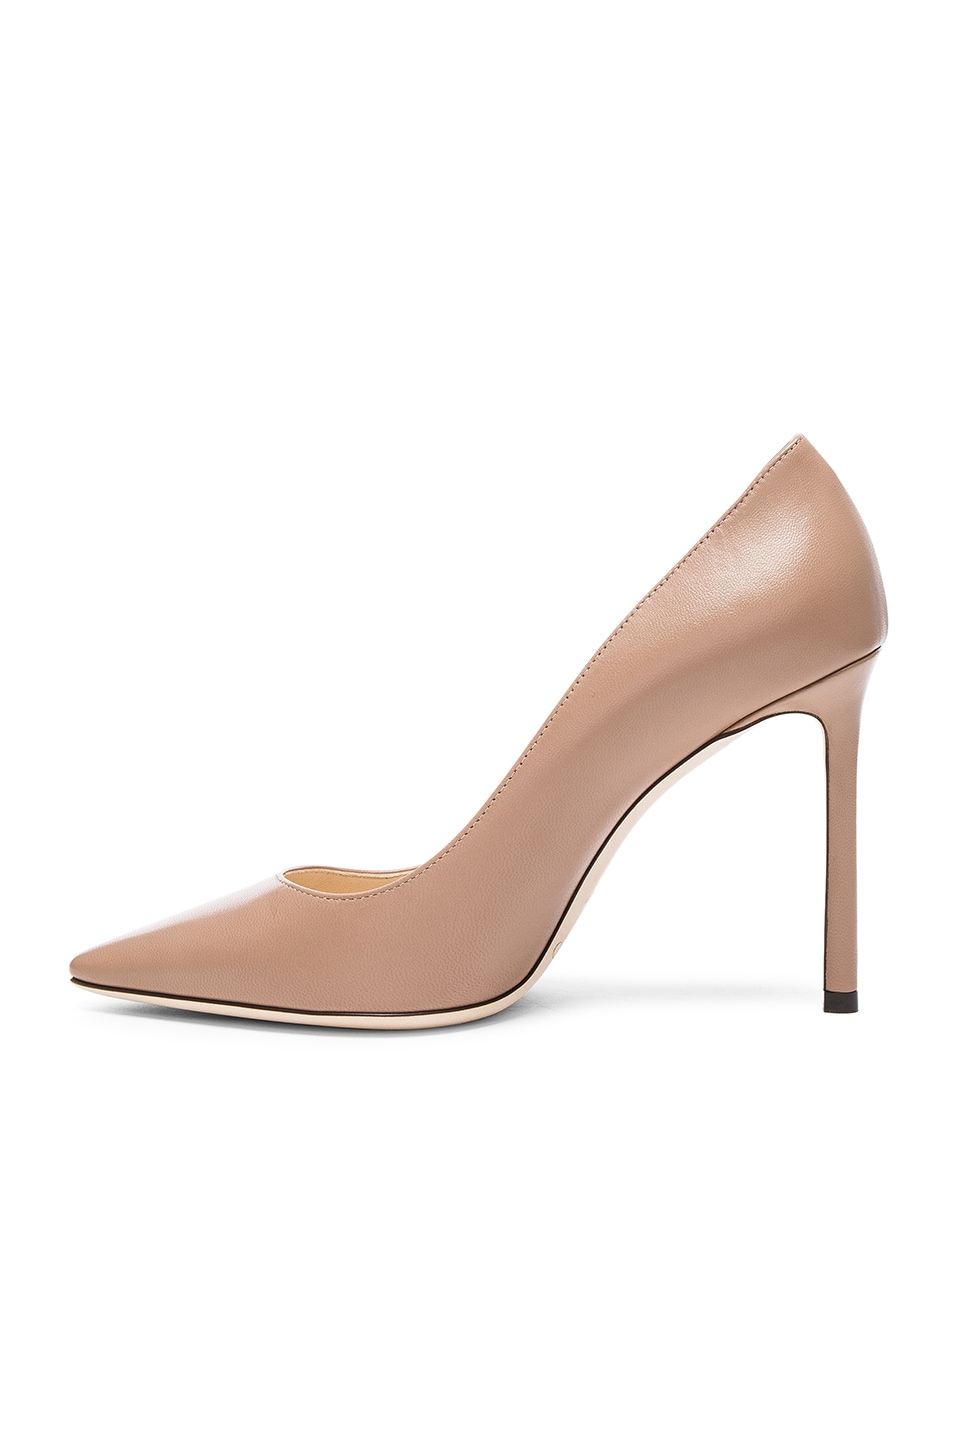 Image 5 of Jimmy Choo Romy 100 Leather Pumps in Ballet Pink